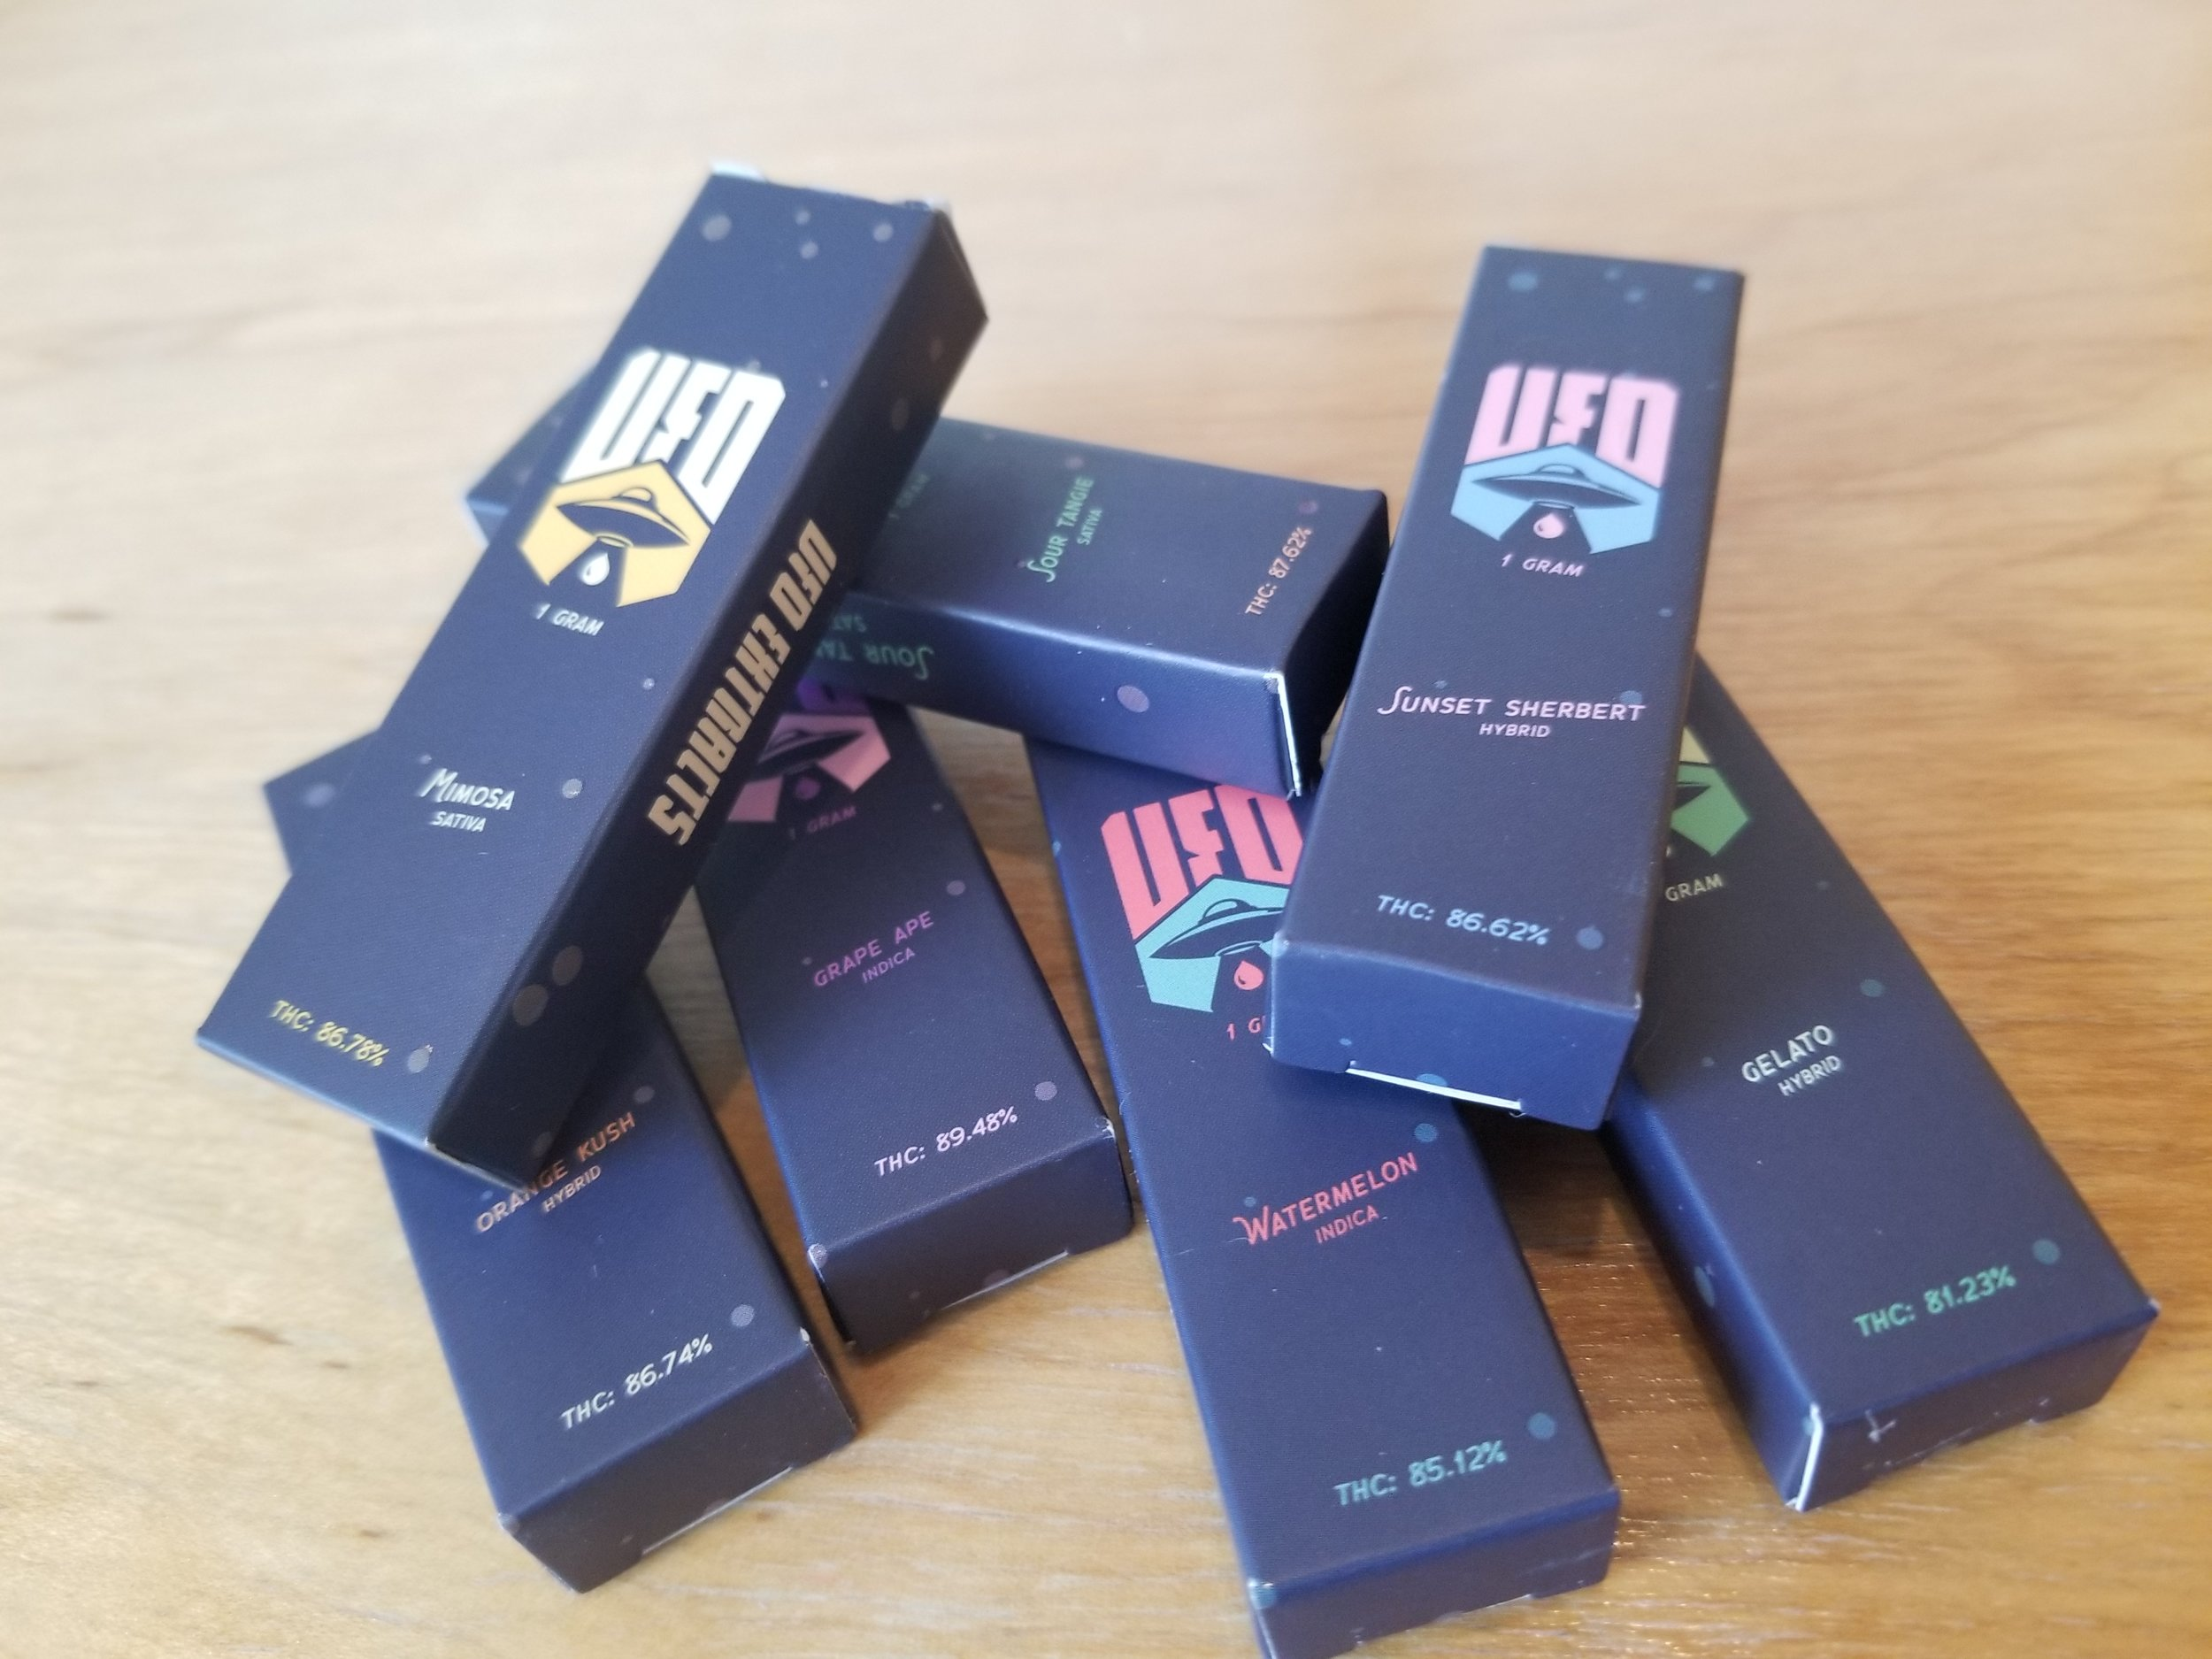 1 Gram UFO Cartridge - $60 00 — Chronic Pharmer Distributors